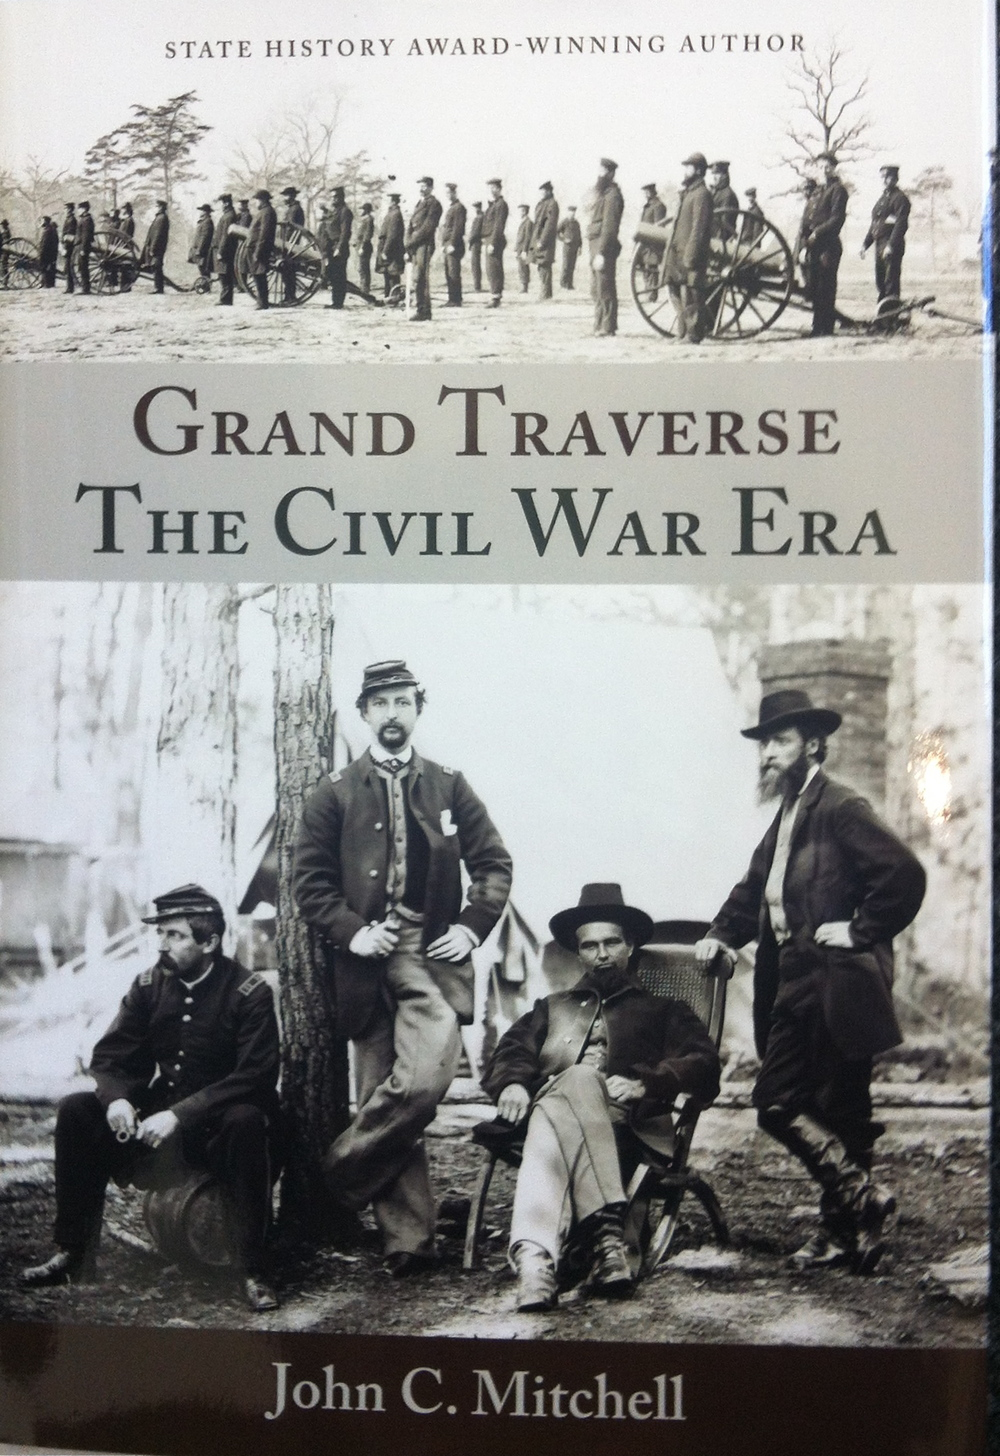 Grand Traverse The Civil War Era